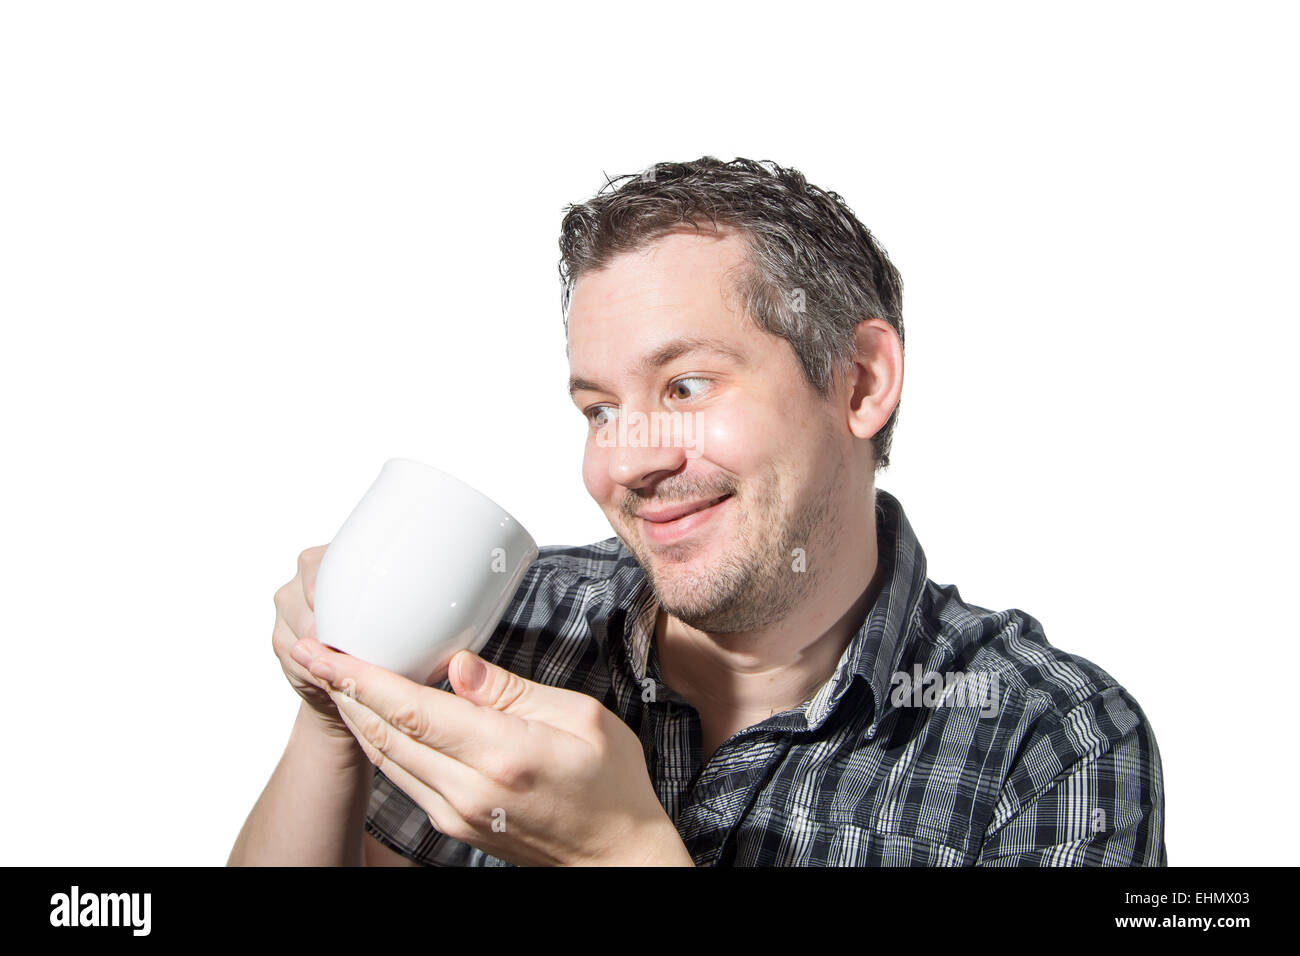 Picture of a man that cares really much about his coffee - Stock Image